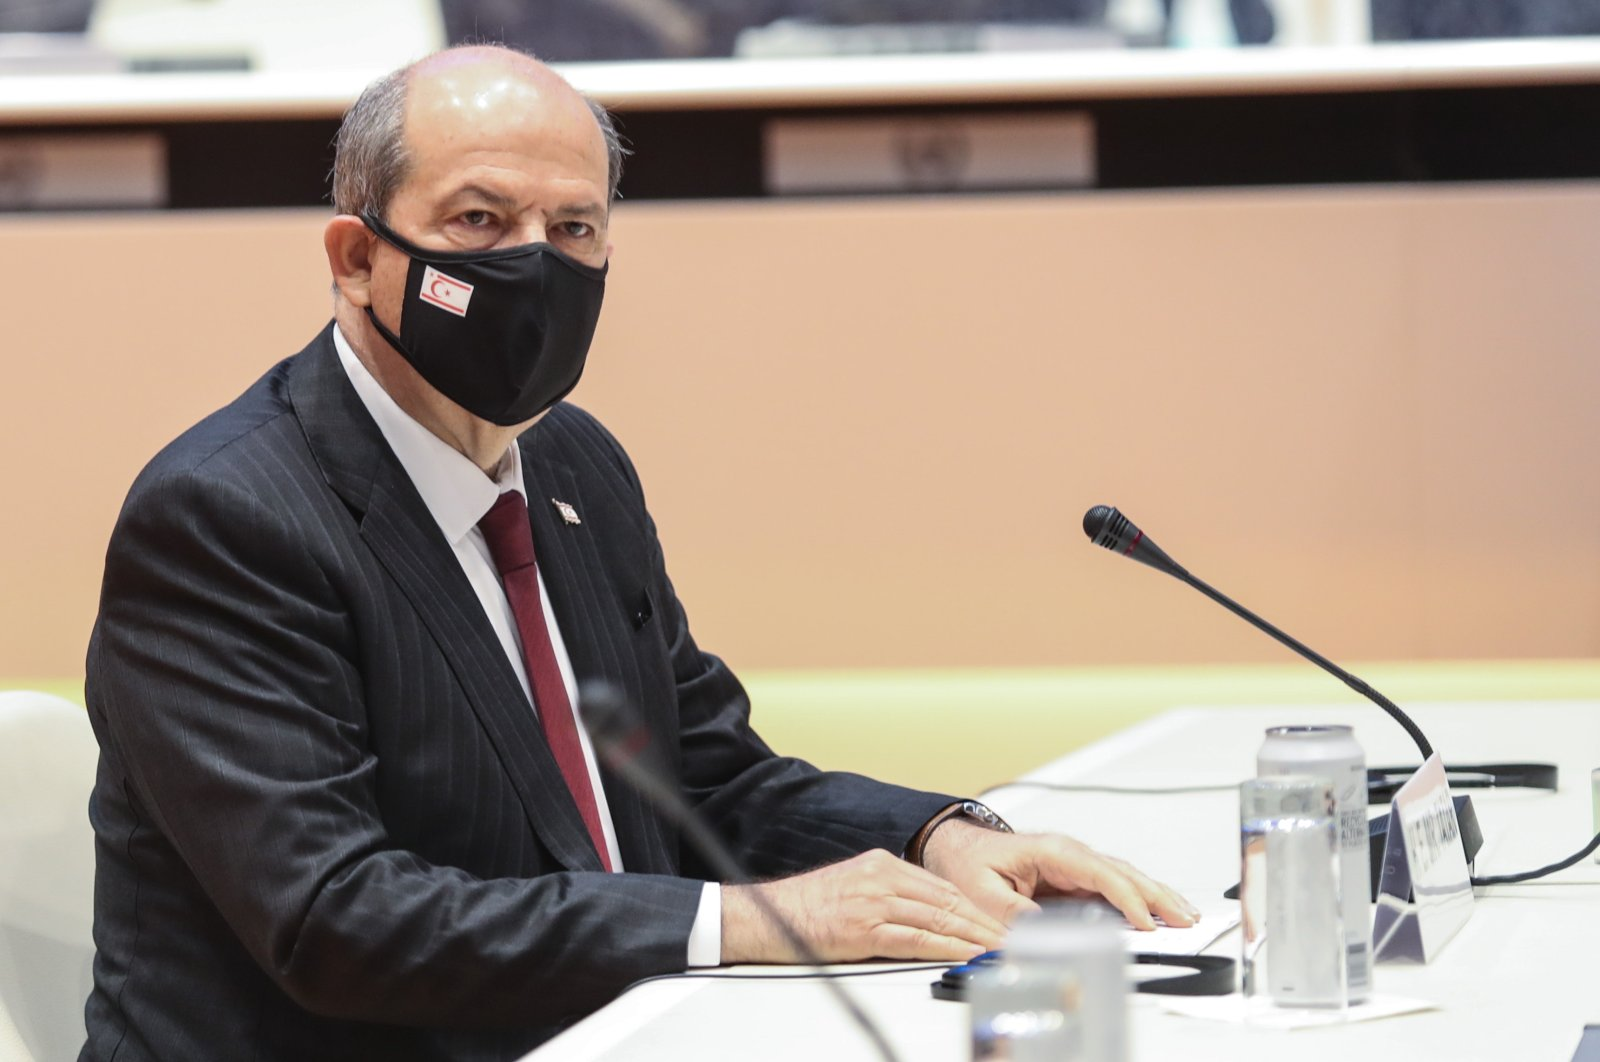 Turkish Cypriot leader Ersin Tatar is seen during the Geneva talks held to find a solution to the Cyprus issue, Switzerland, April 29, 2021. (AA Photo)